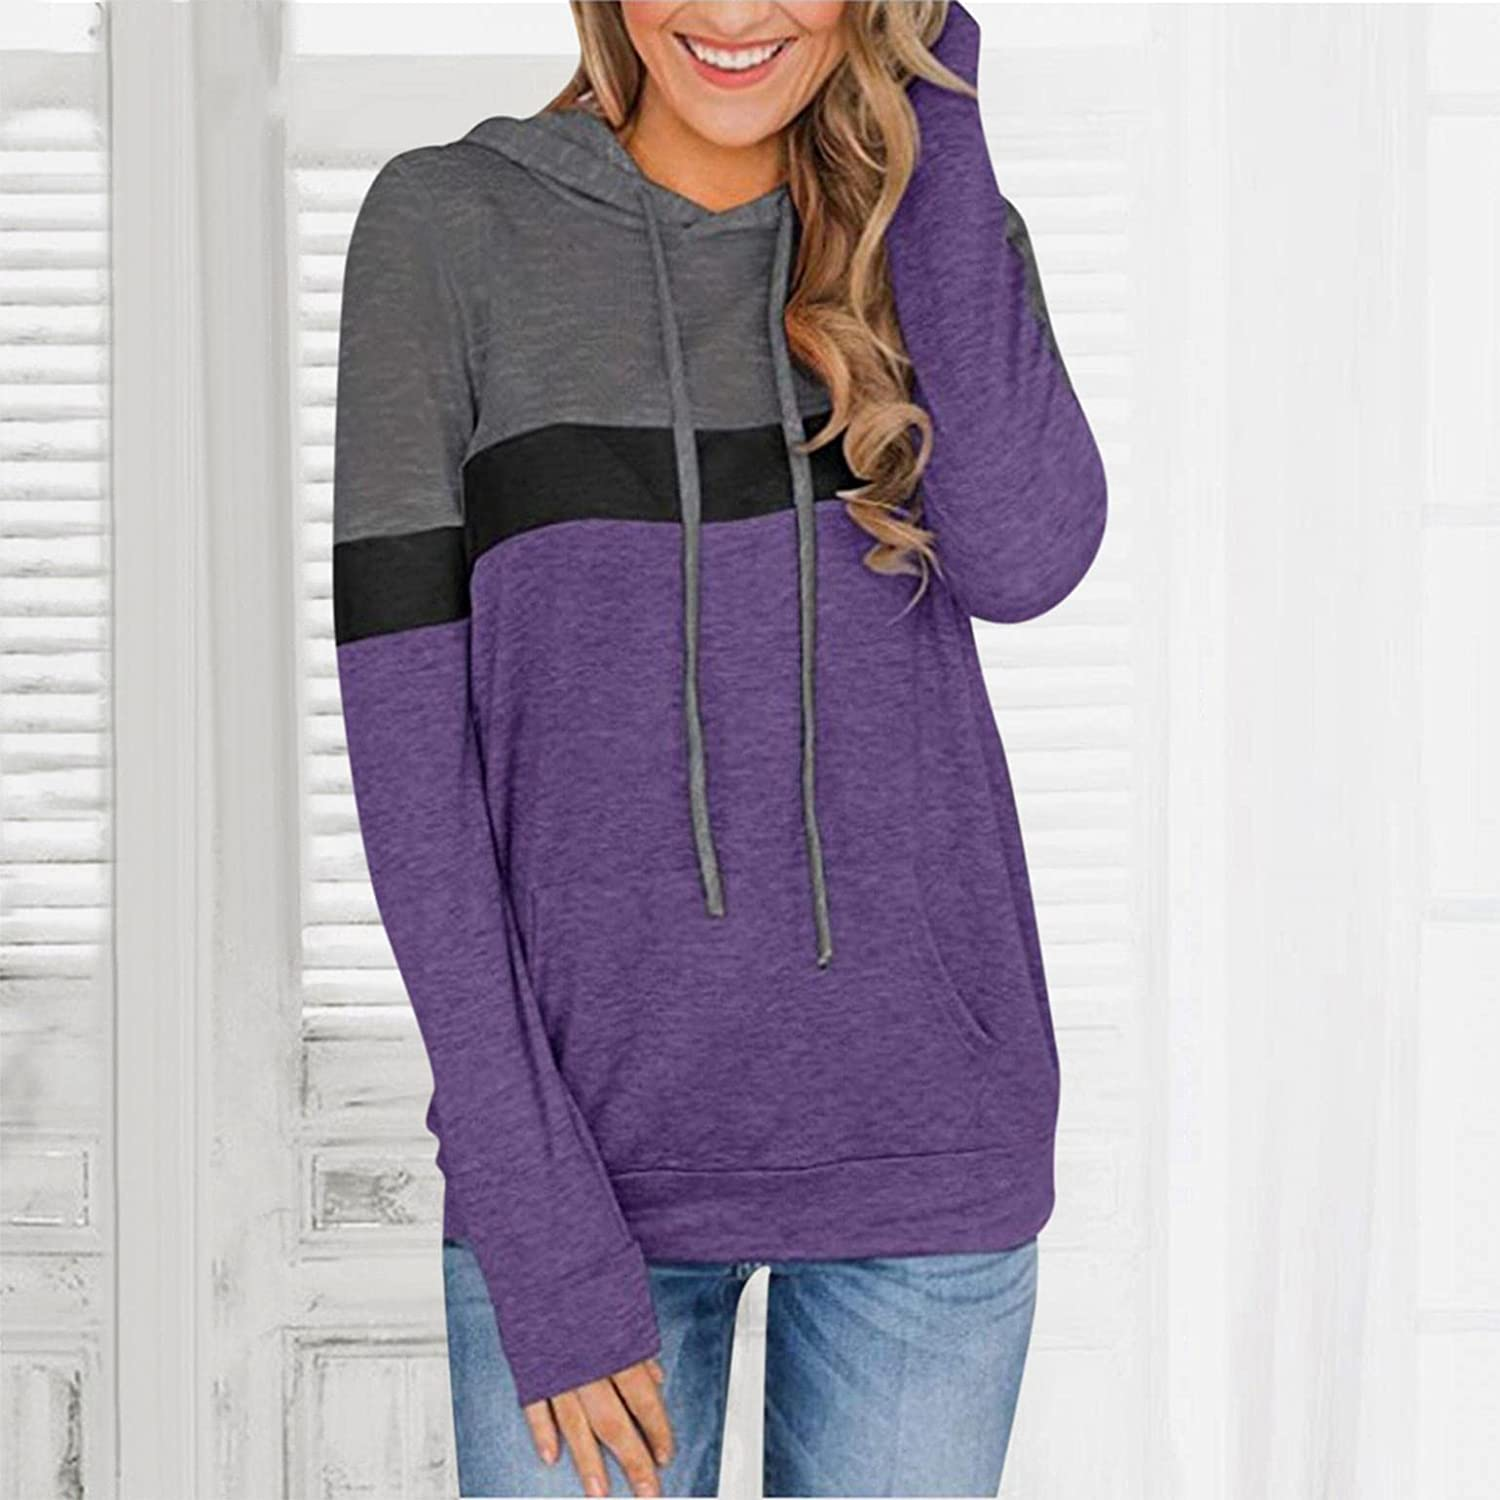 Haheyrte Hoodies for Womens Long Sleeve Patchwork Print Long-sleeved Hooded Casual Sweatshirts Pullover Tops Sweaters Blouse